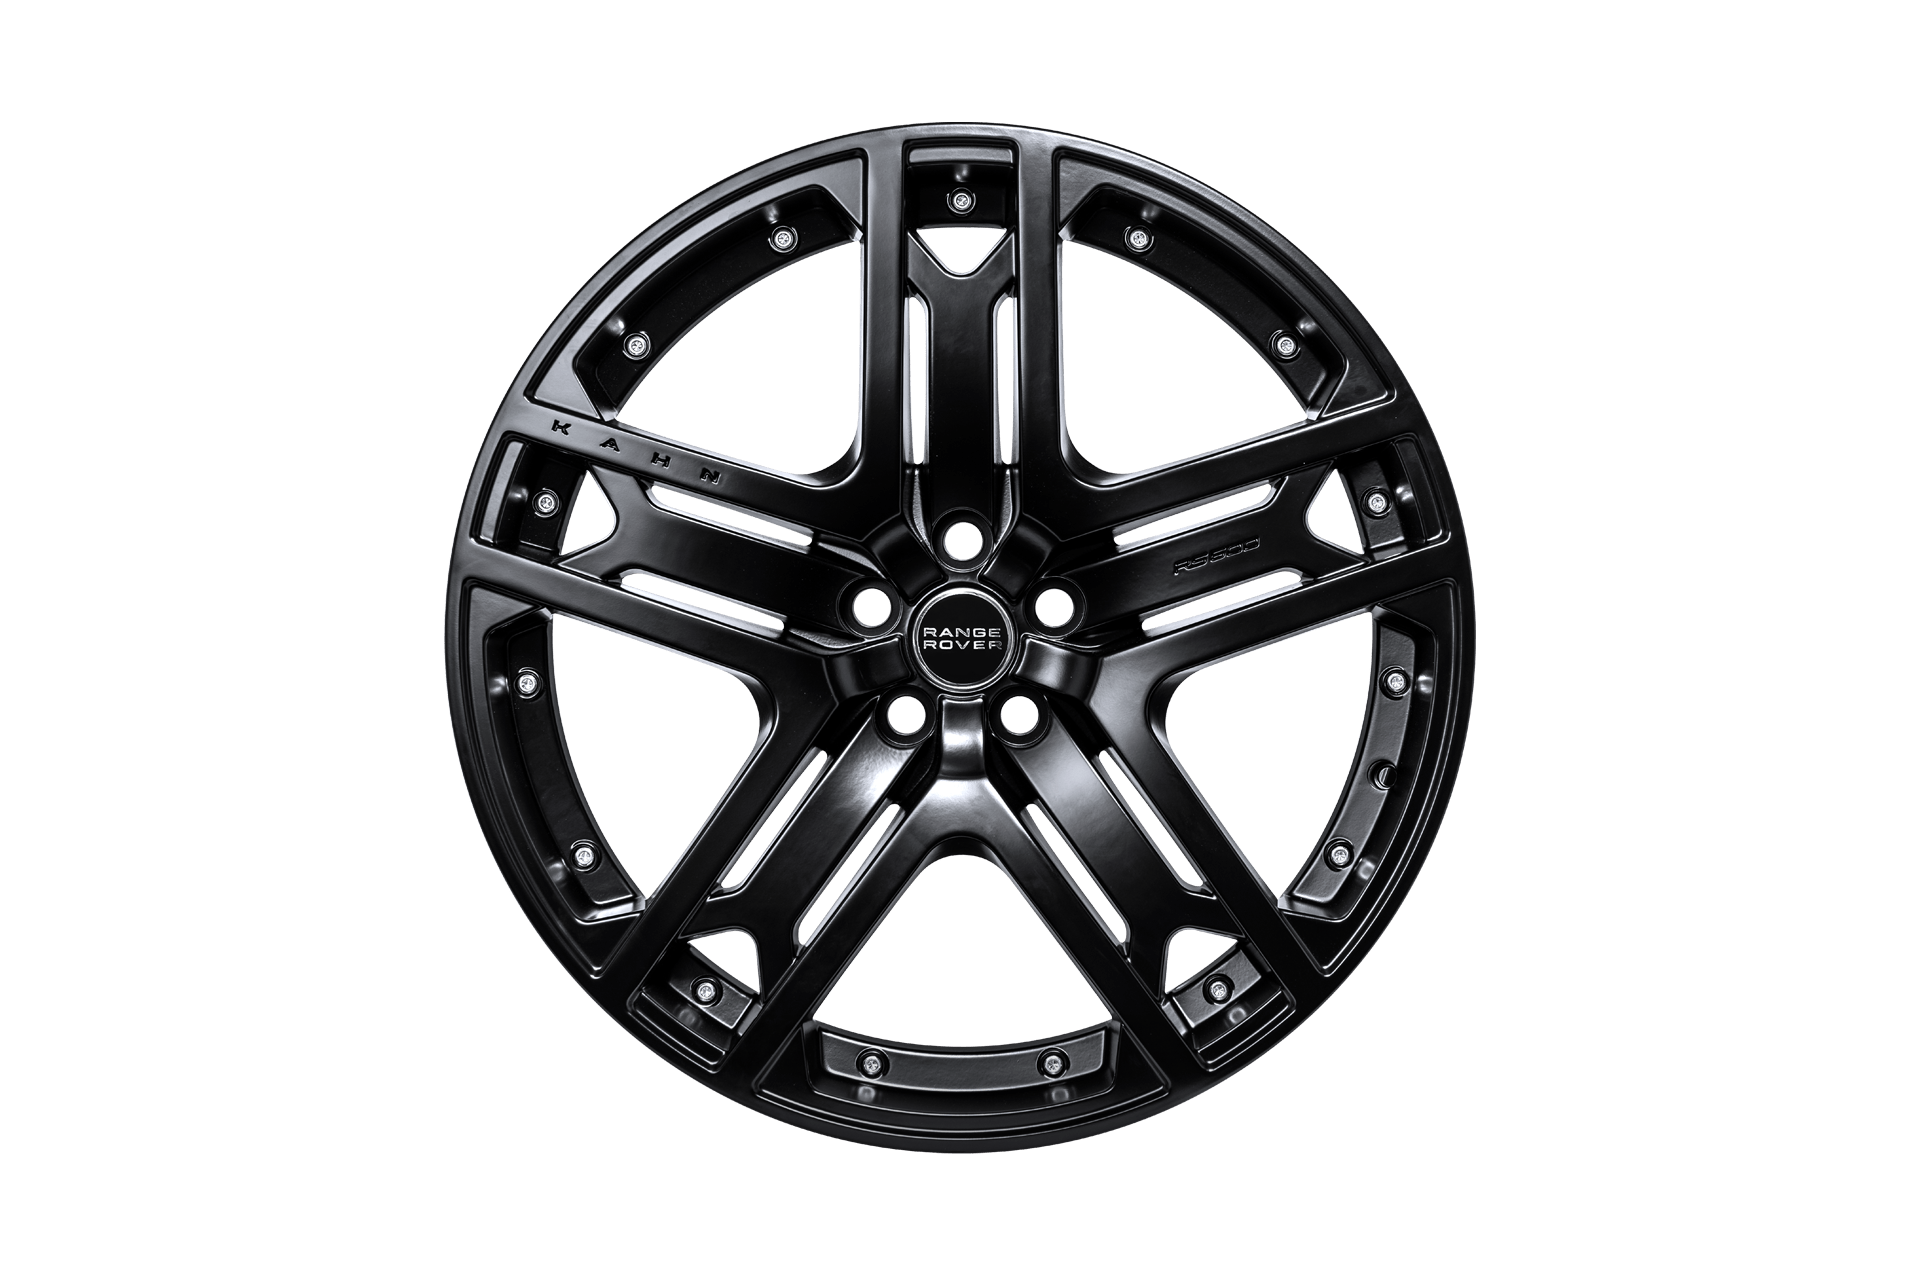 Range Rover (2018-Present) Rs600 Light Alloy Wheels by Kahn - Image 2607